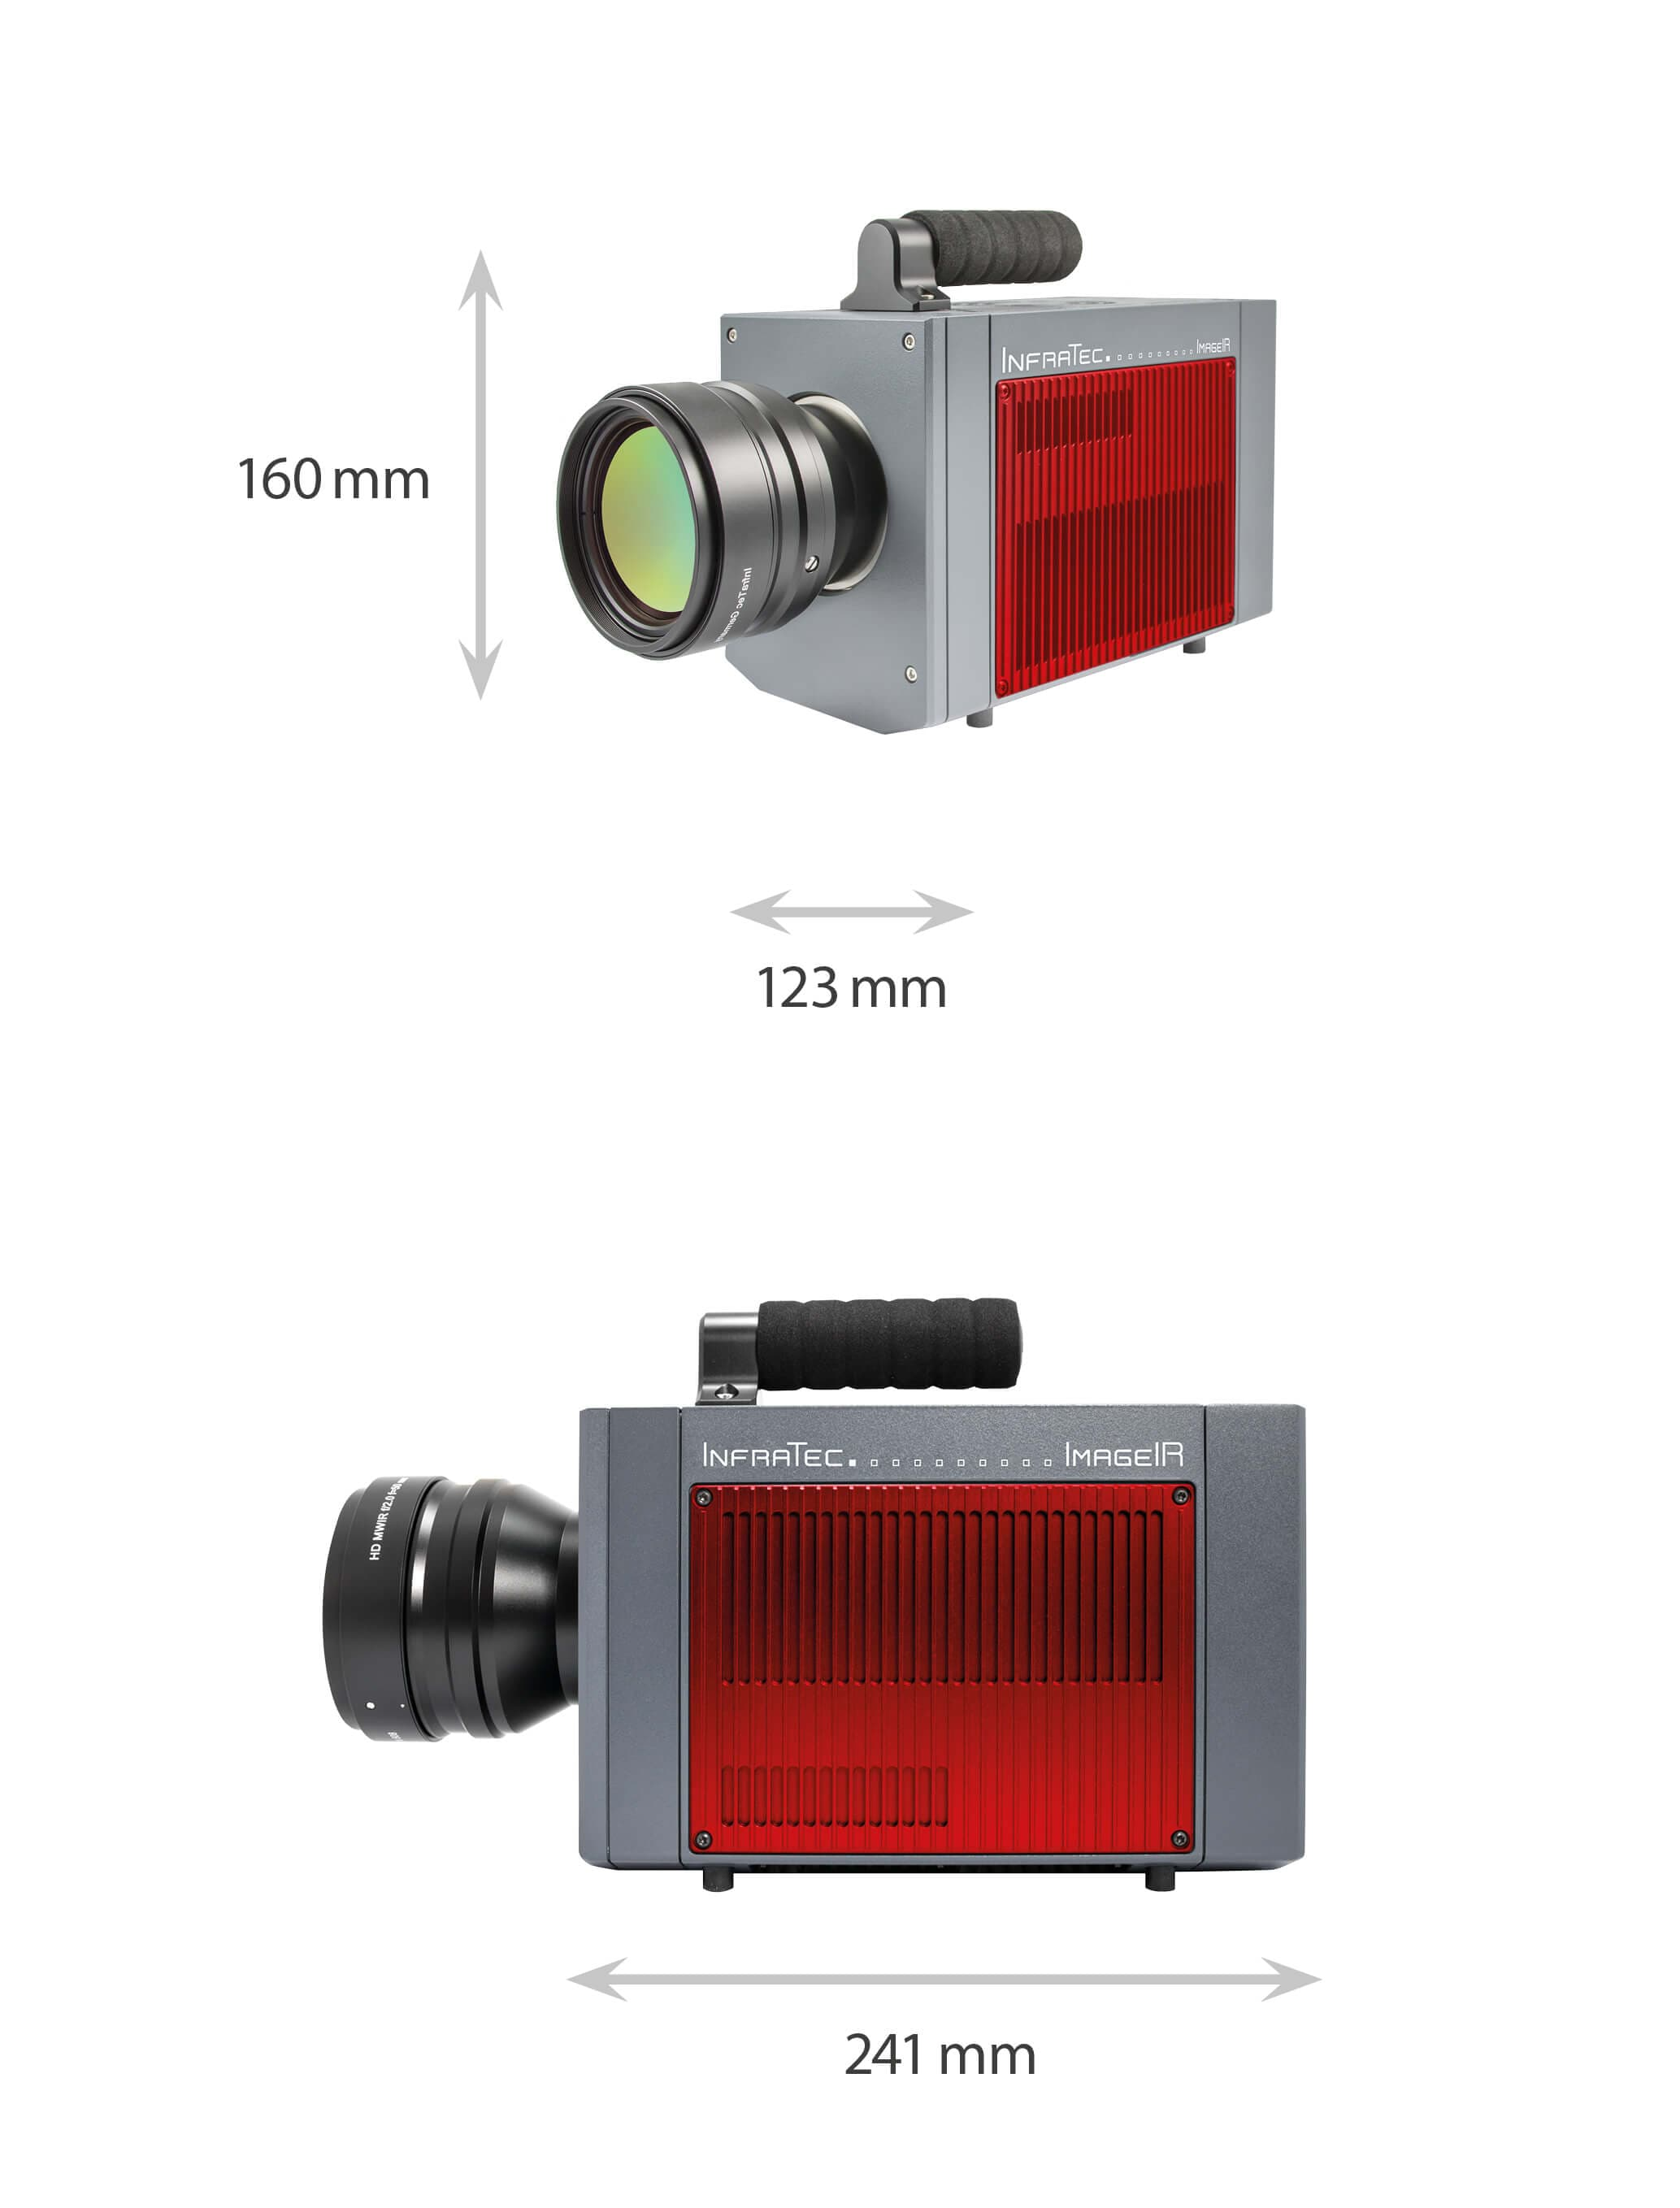 Dimensions of ImageIR series 9500